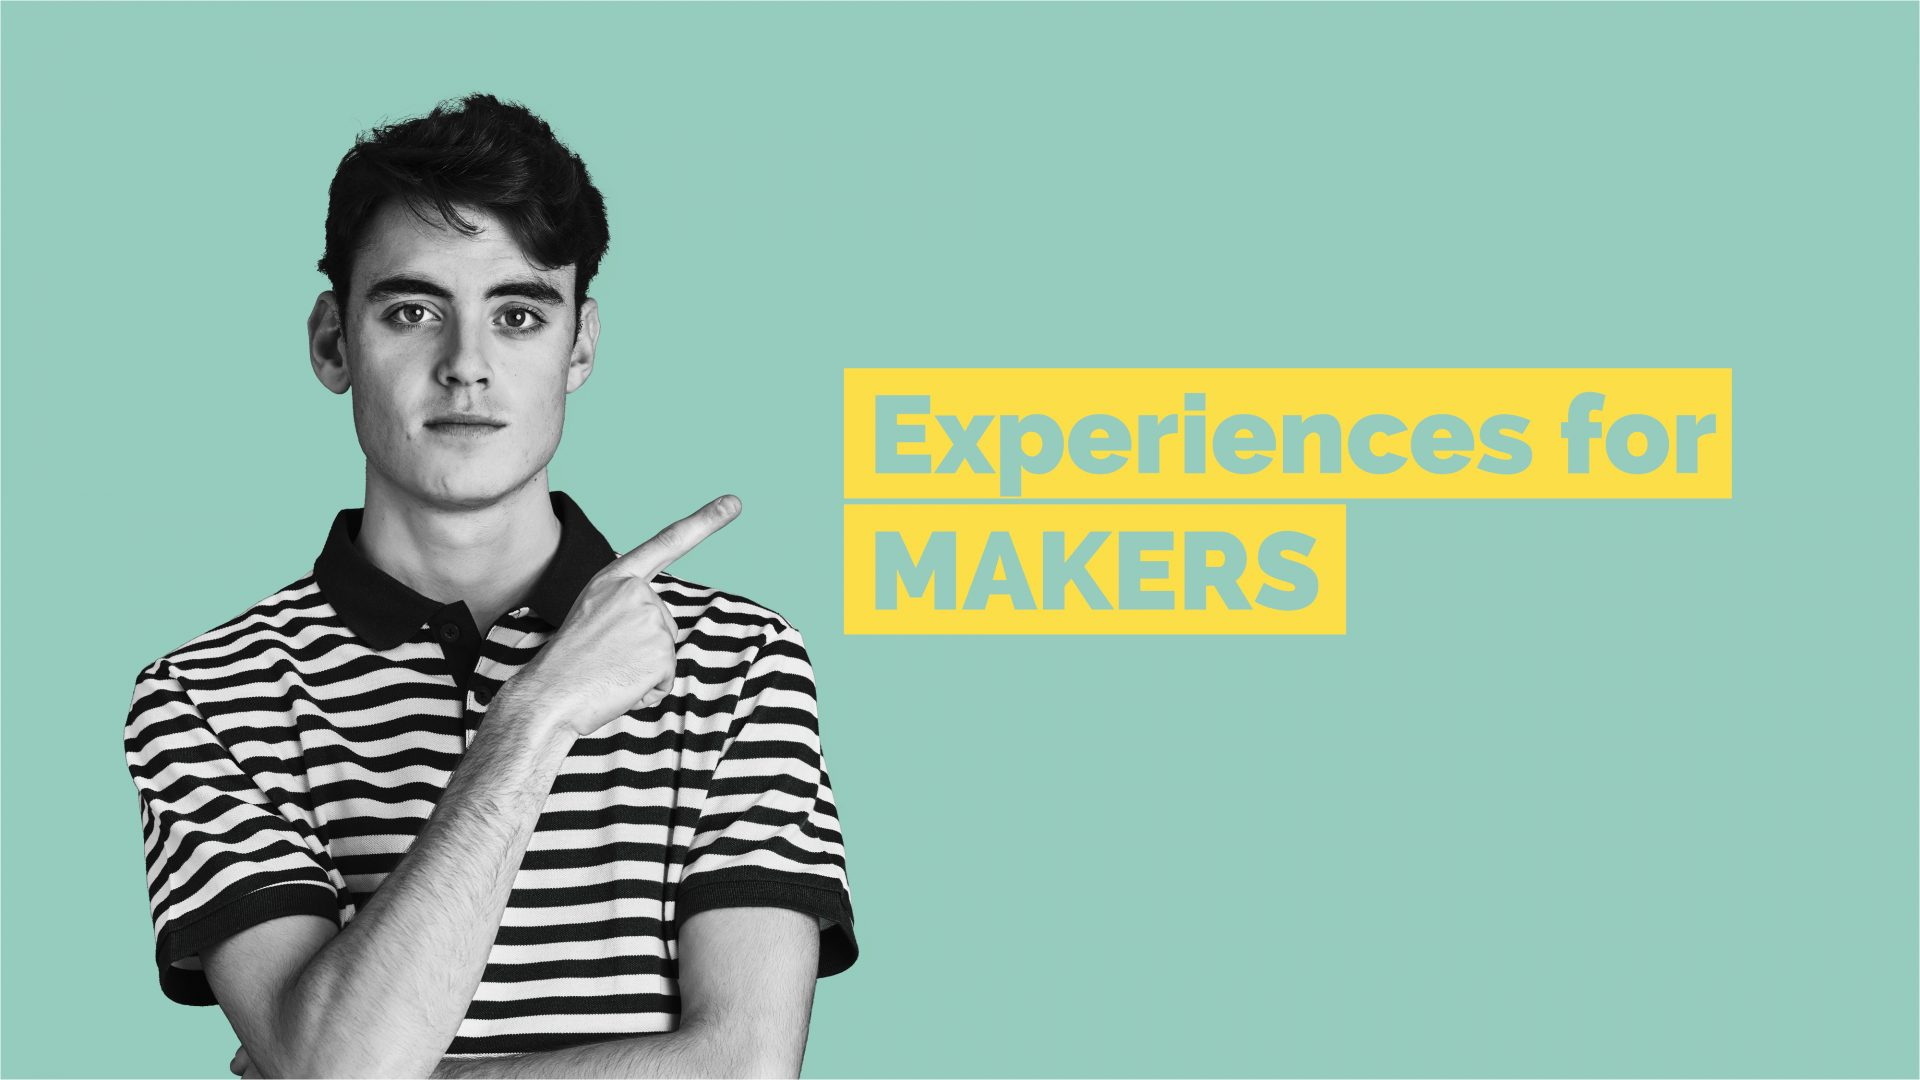 Man standing with crossed arms and pointing at text. Text over image says: Experiences for Makers.